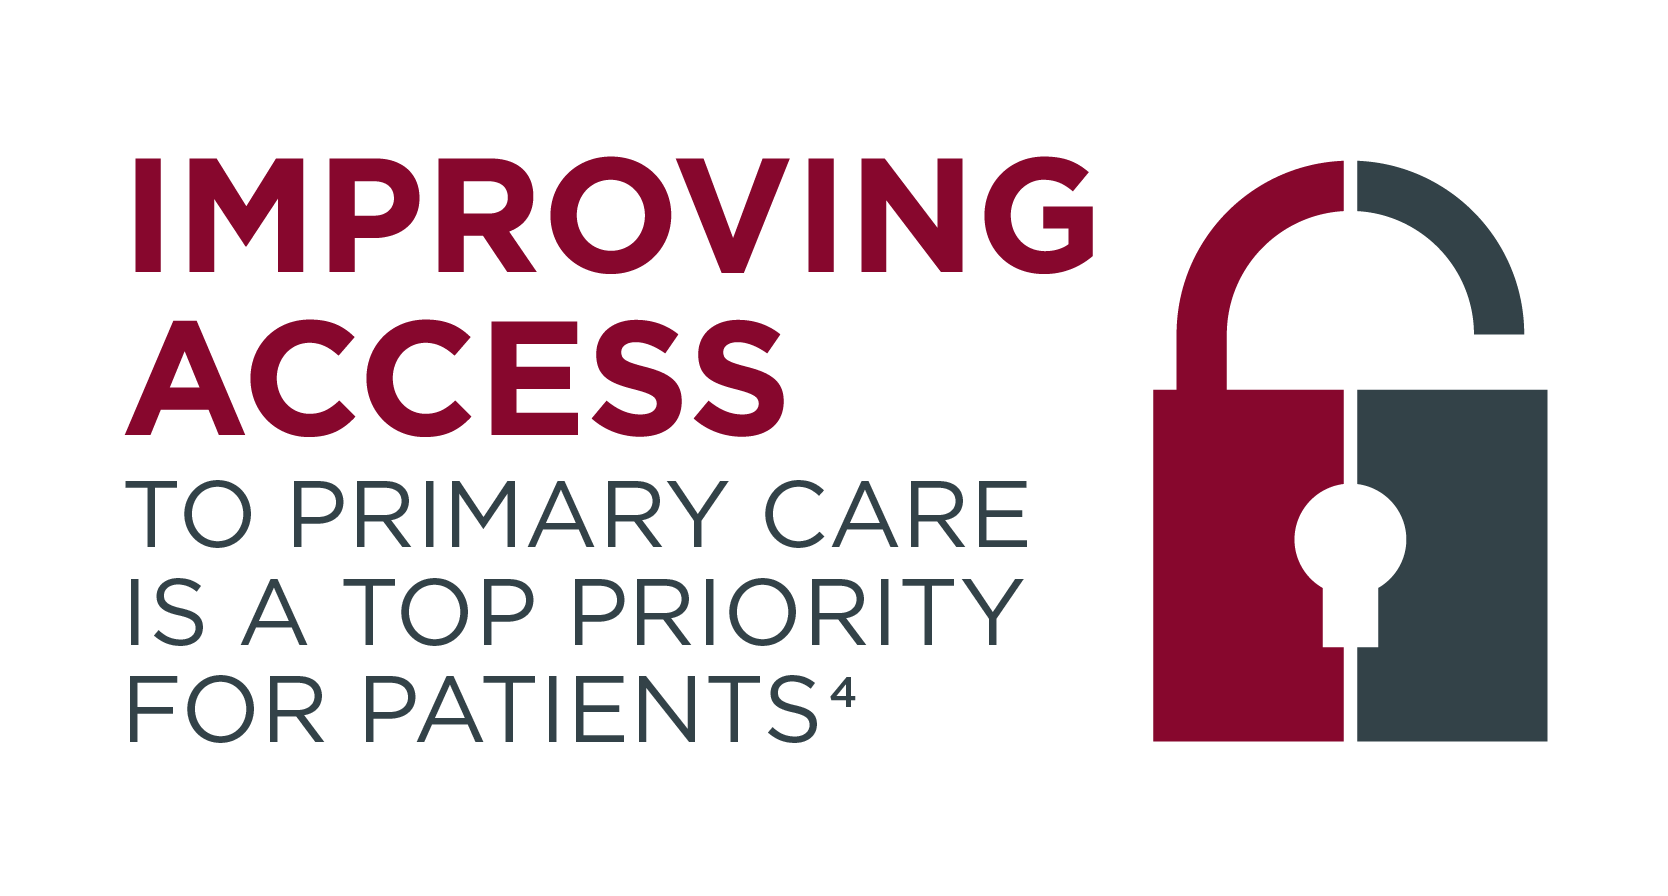 Improving access to primary care is a top priority for patients